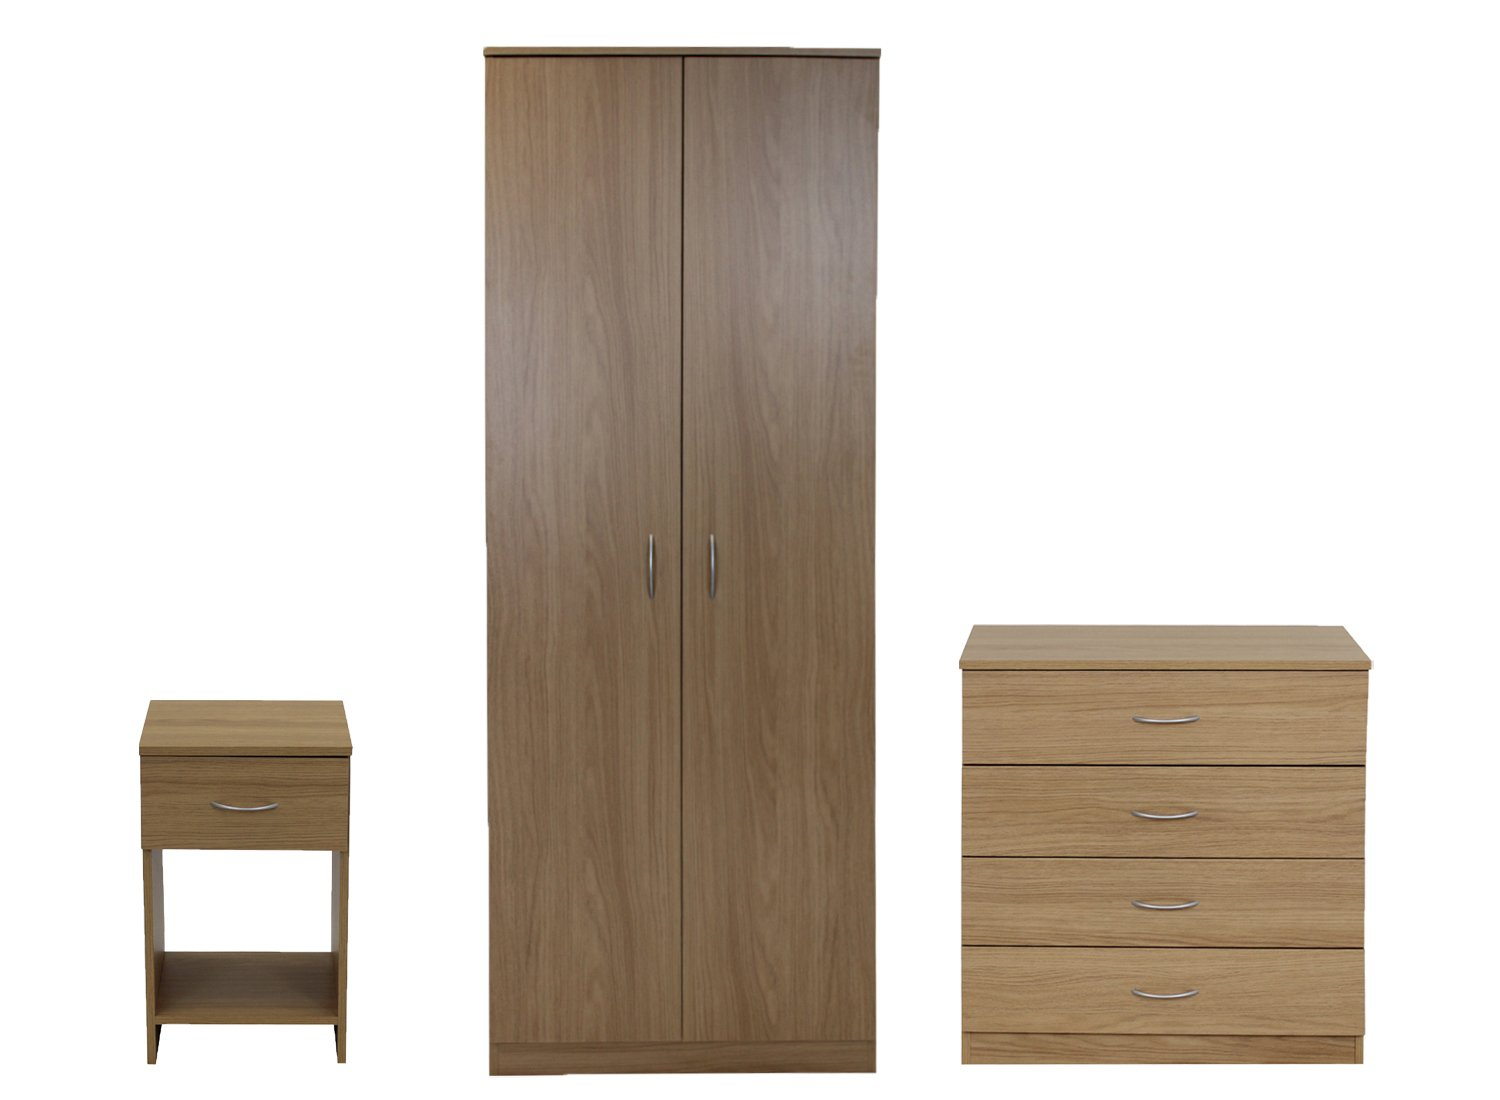 Devoted2Home Boldon Bedroom Furniture Set with Wardrobe/4-Drawer Chest/Bedside Cabinet, Wood, Black, 49.8 x 66.8 x 180 cm, 3-Piece AA180901BO2